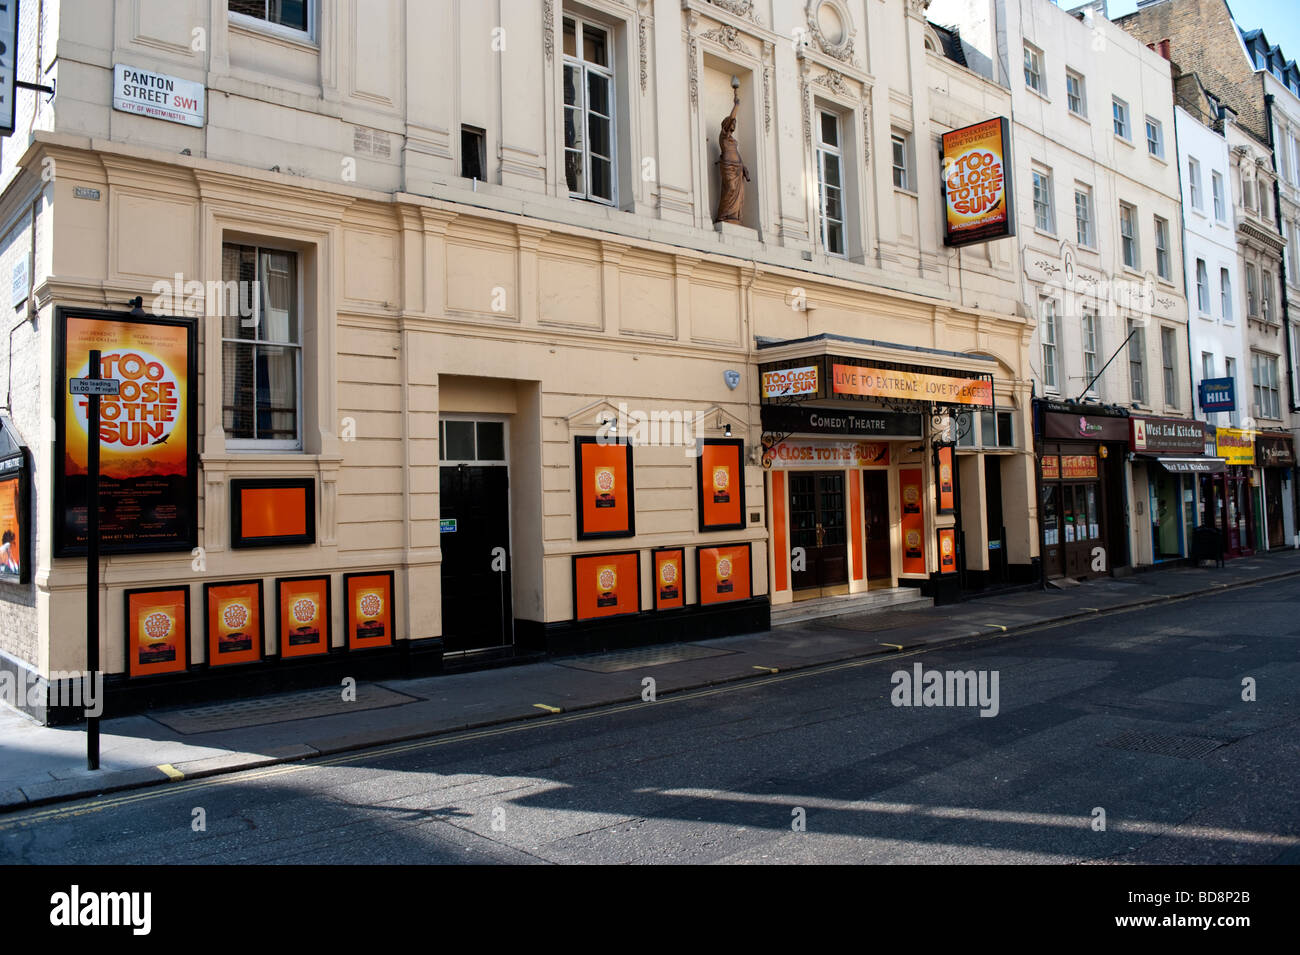 The Comedy Theatre in London. - Stock Image